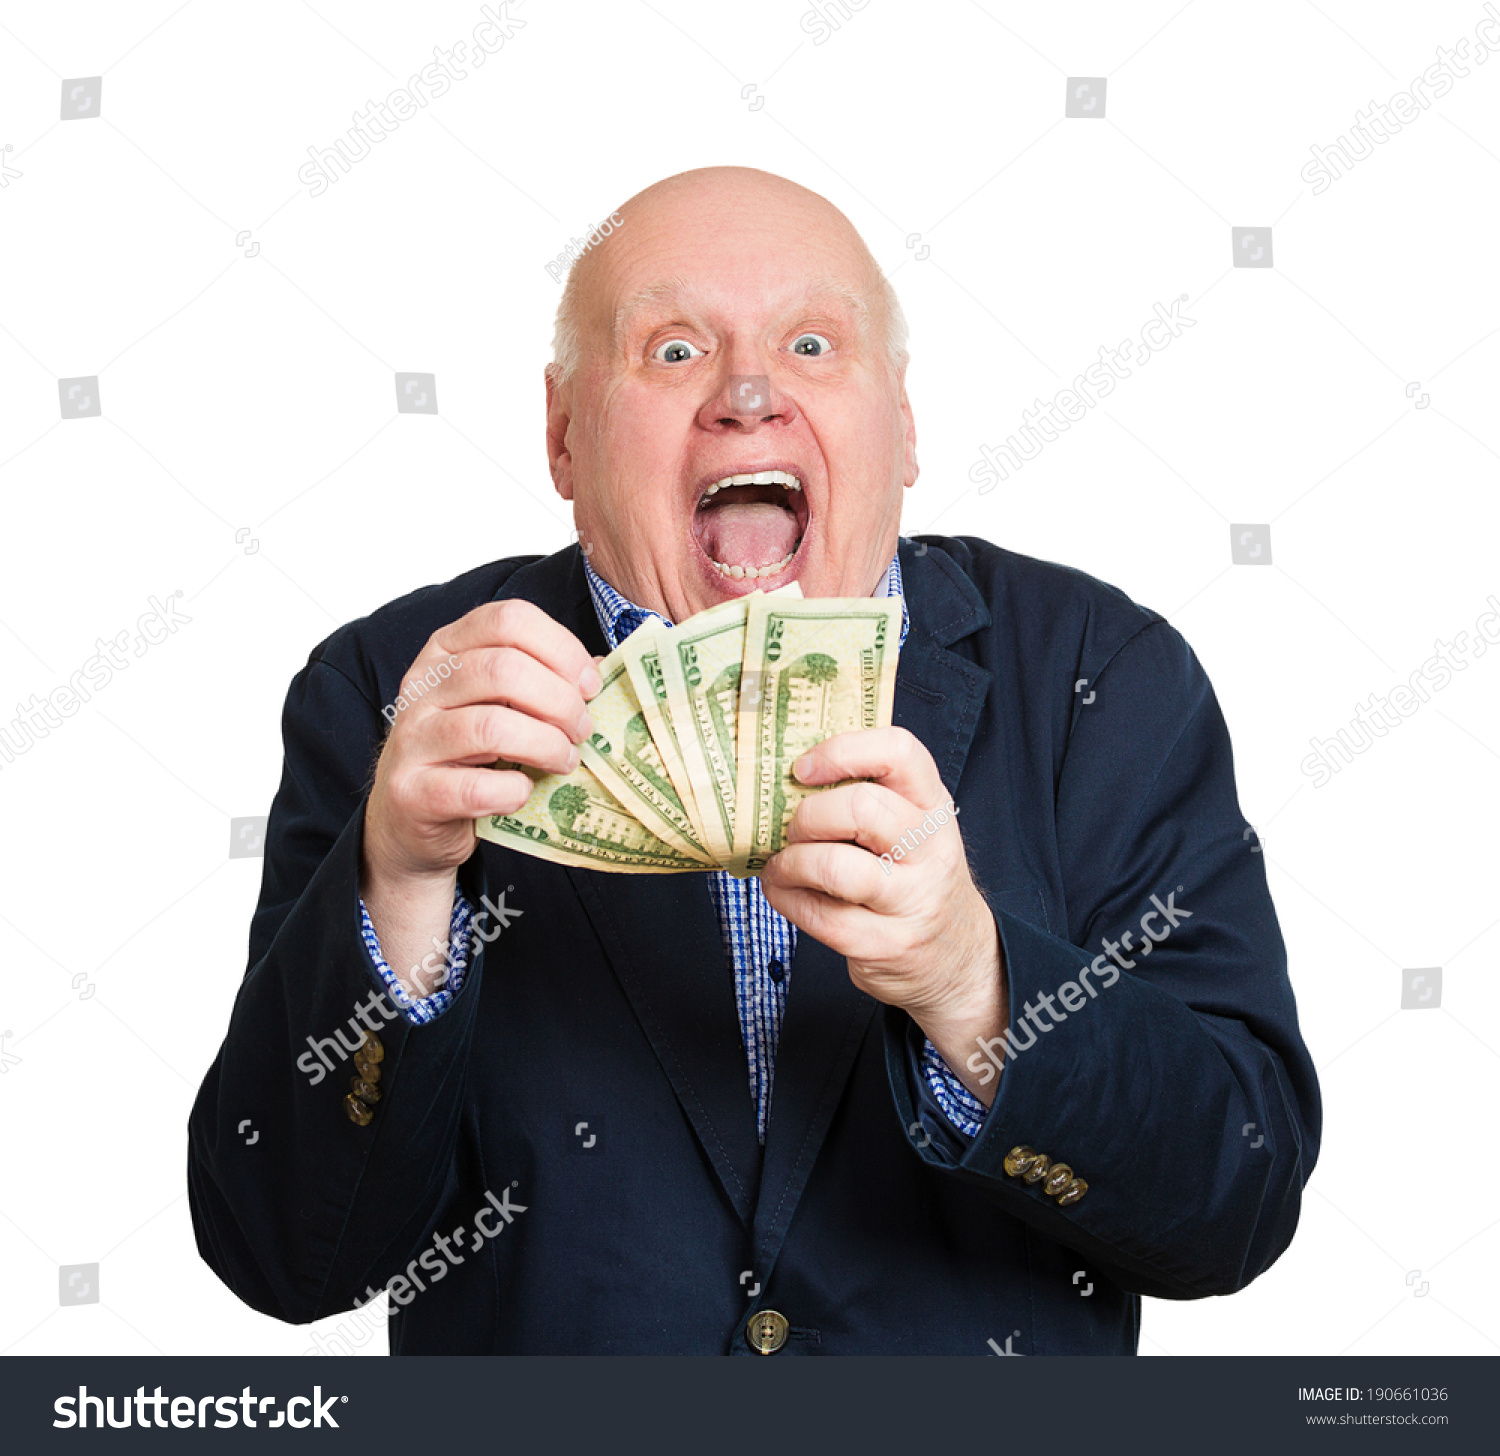 stock-photo-closeup-portrait-happy-excited-successful-senior-lucky-elderly-man-holding-money-dollar-bills-in-190661036.jpg